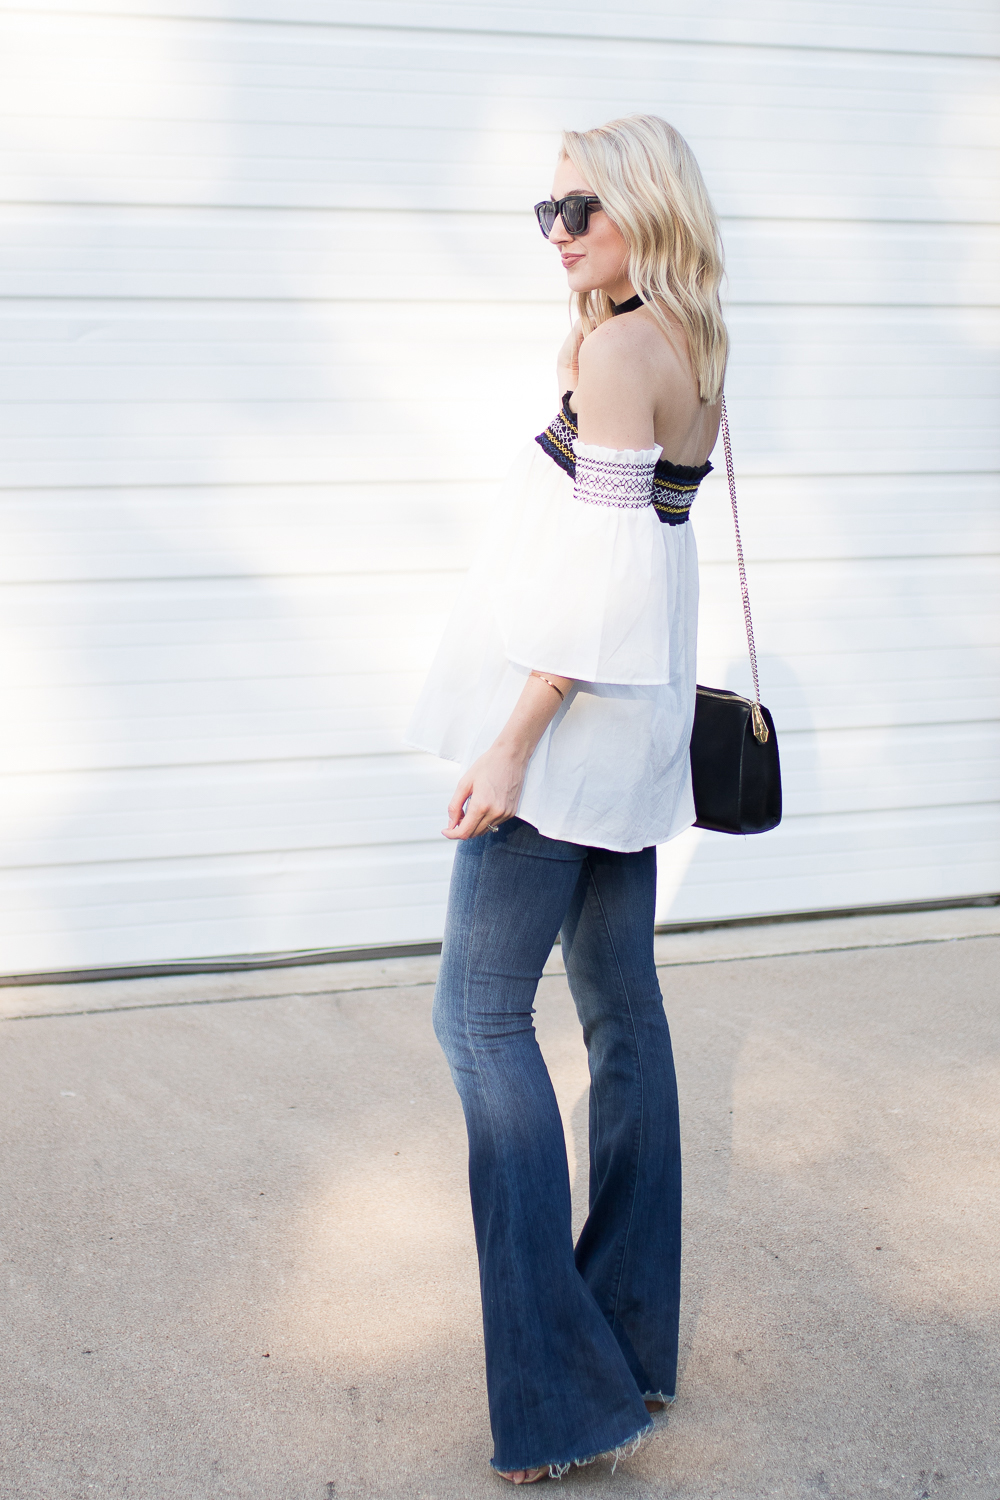 Bell sleeves & bell bottoms